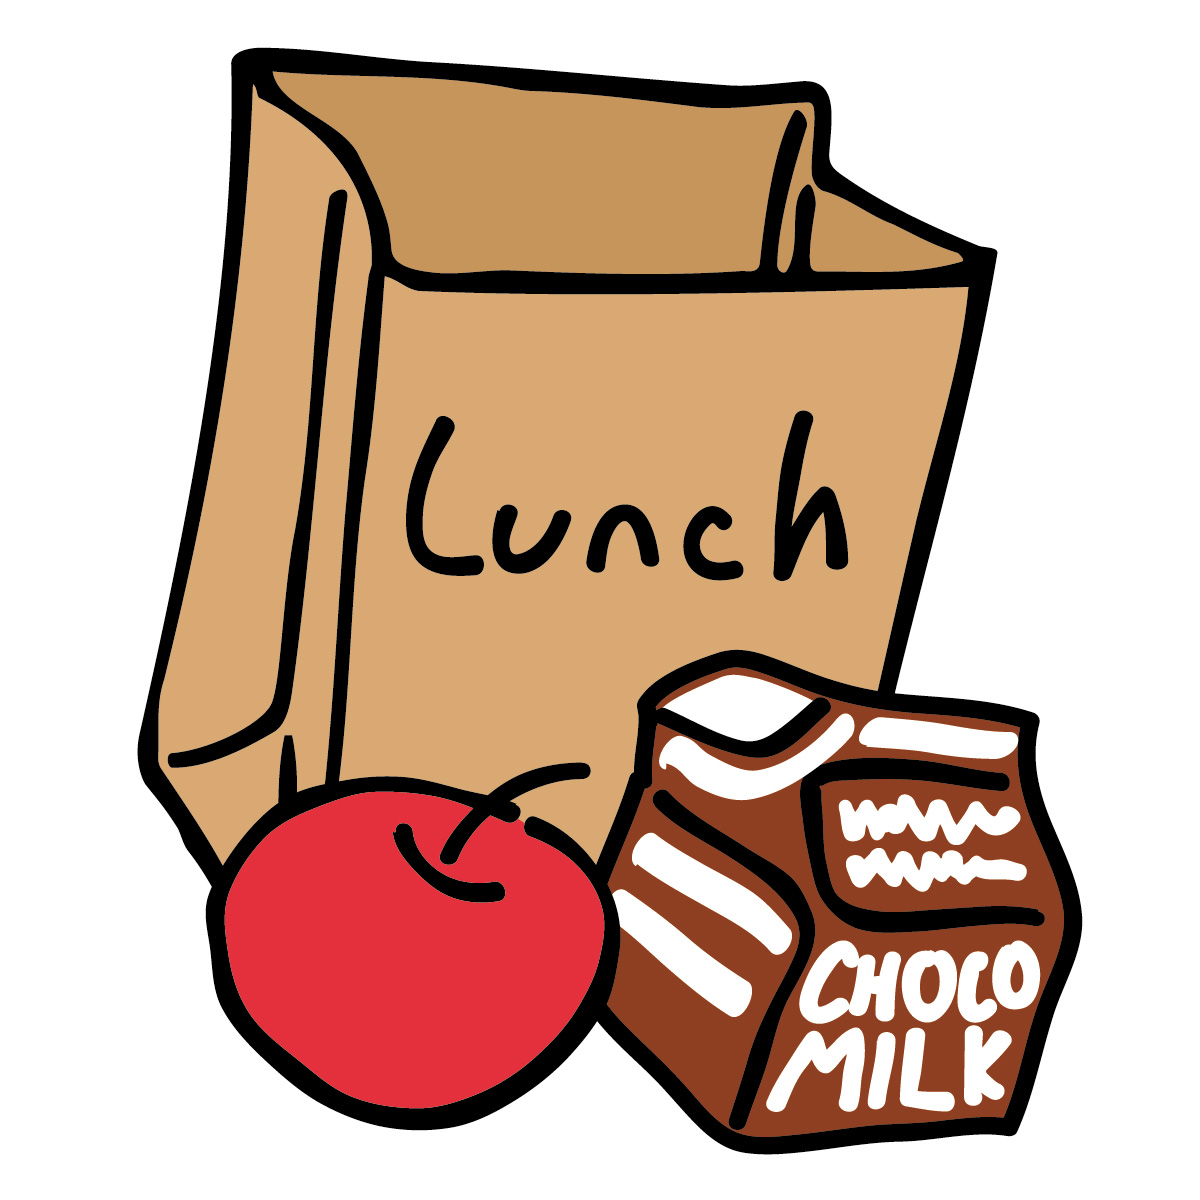 Lunch Break Clipart.